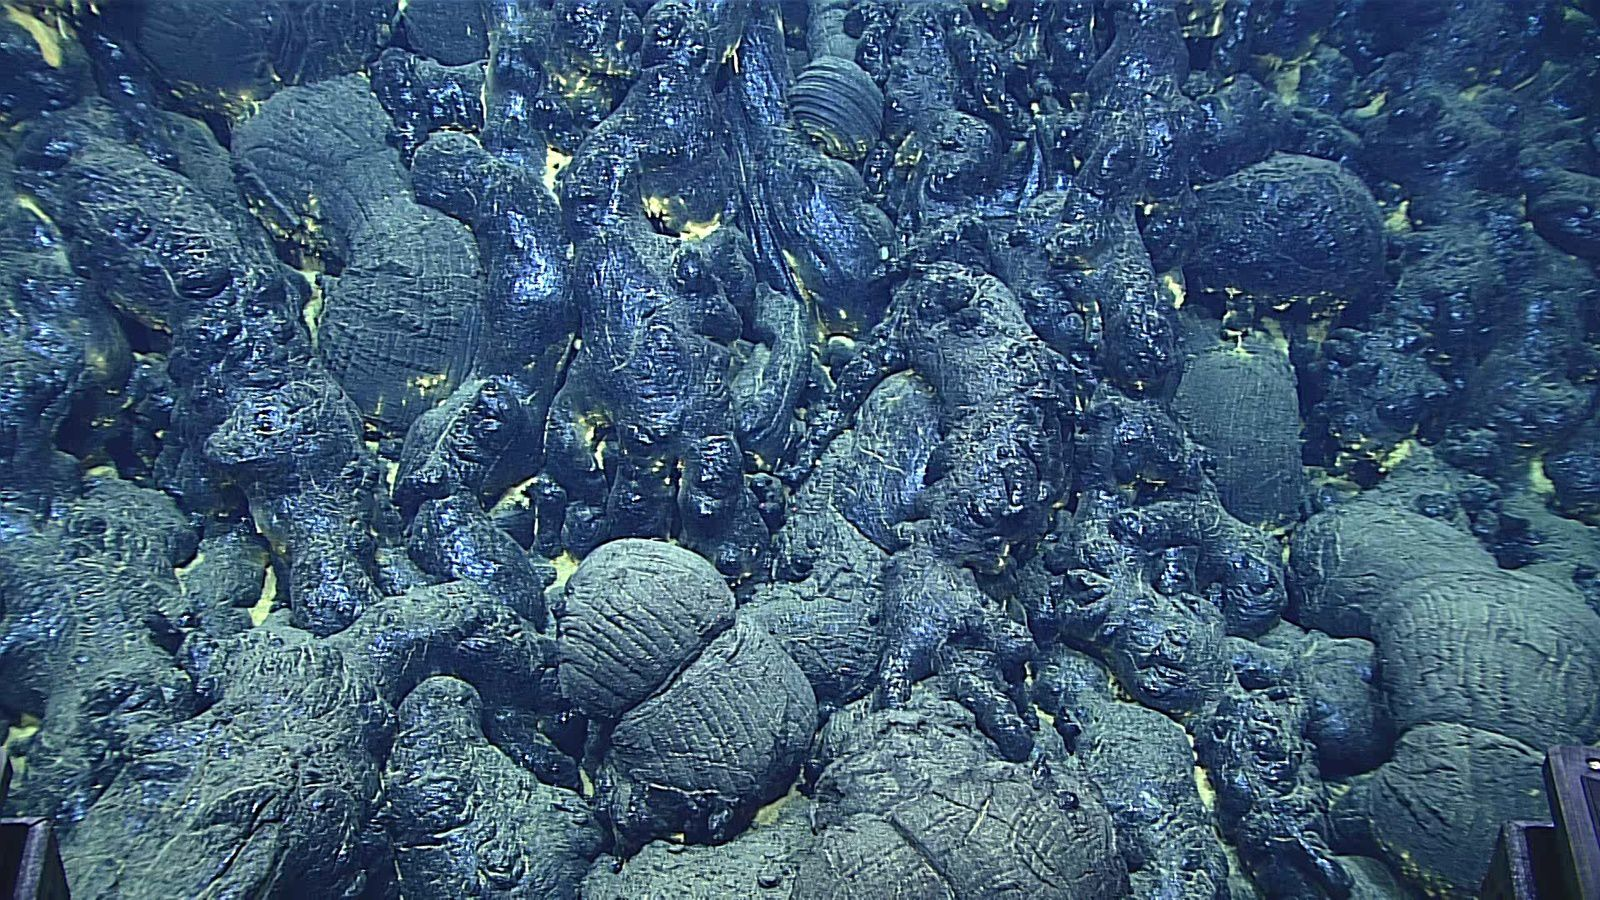 .Bassin d'arrière-arc des Mariannes - plongée 9 : pillow lava vitreuses - Image courtesy of NOAA Office of Ocean Exploration and Research, 2016 Deepwater Exploration of the Marianas.